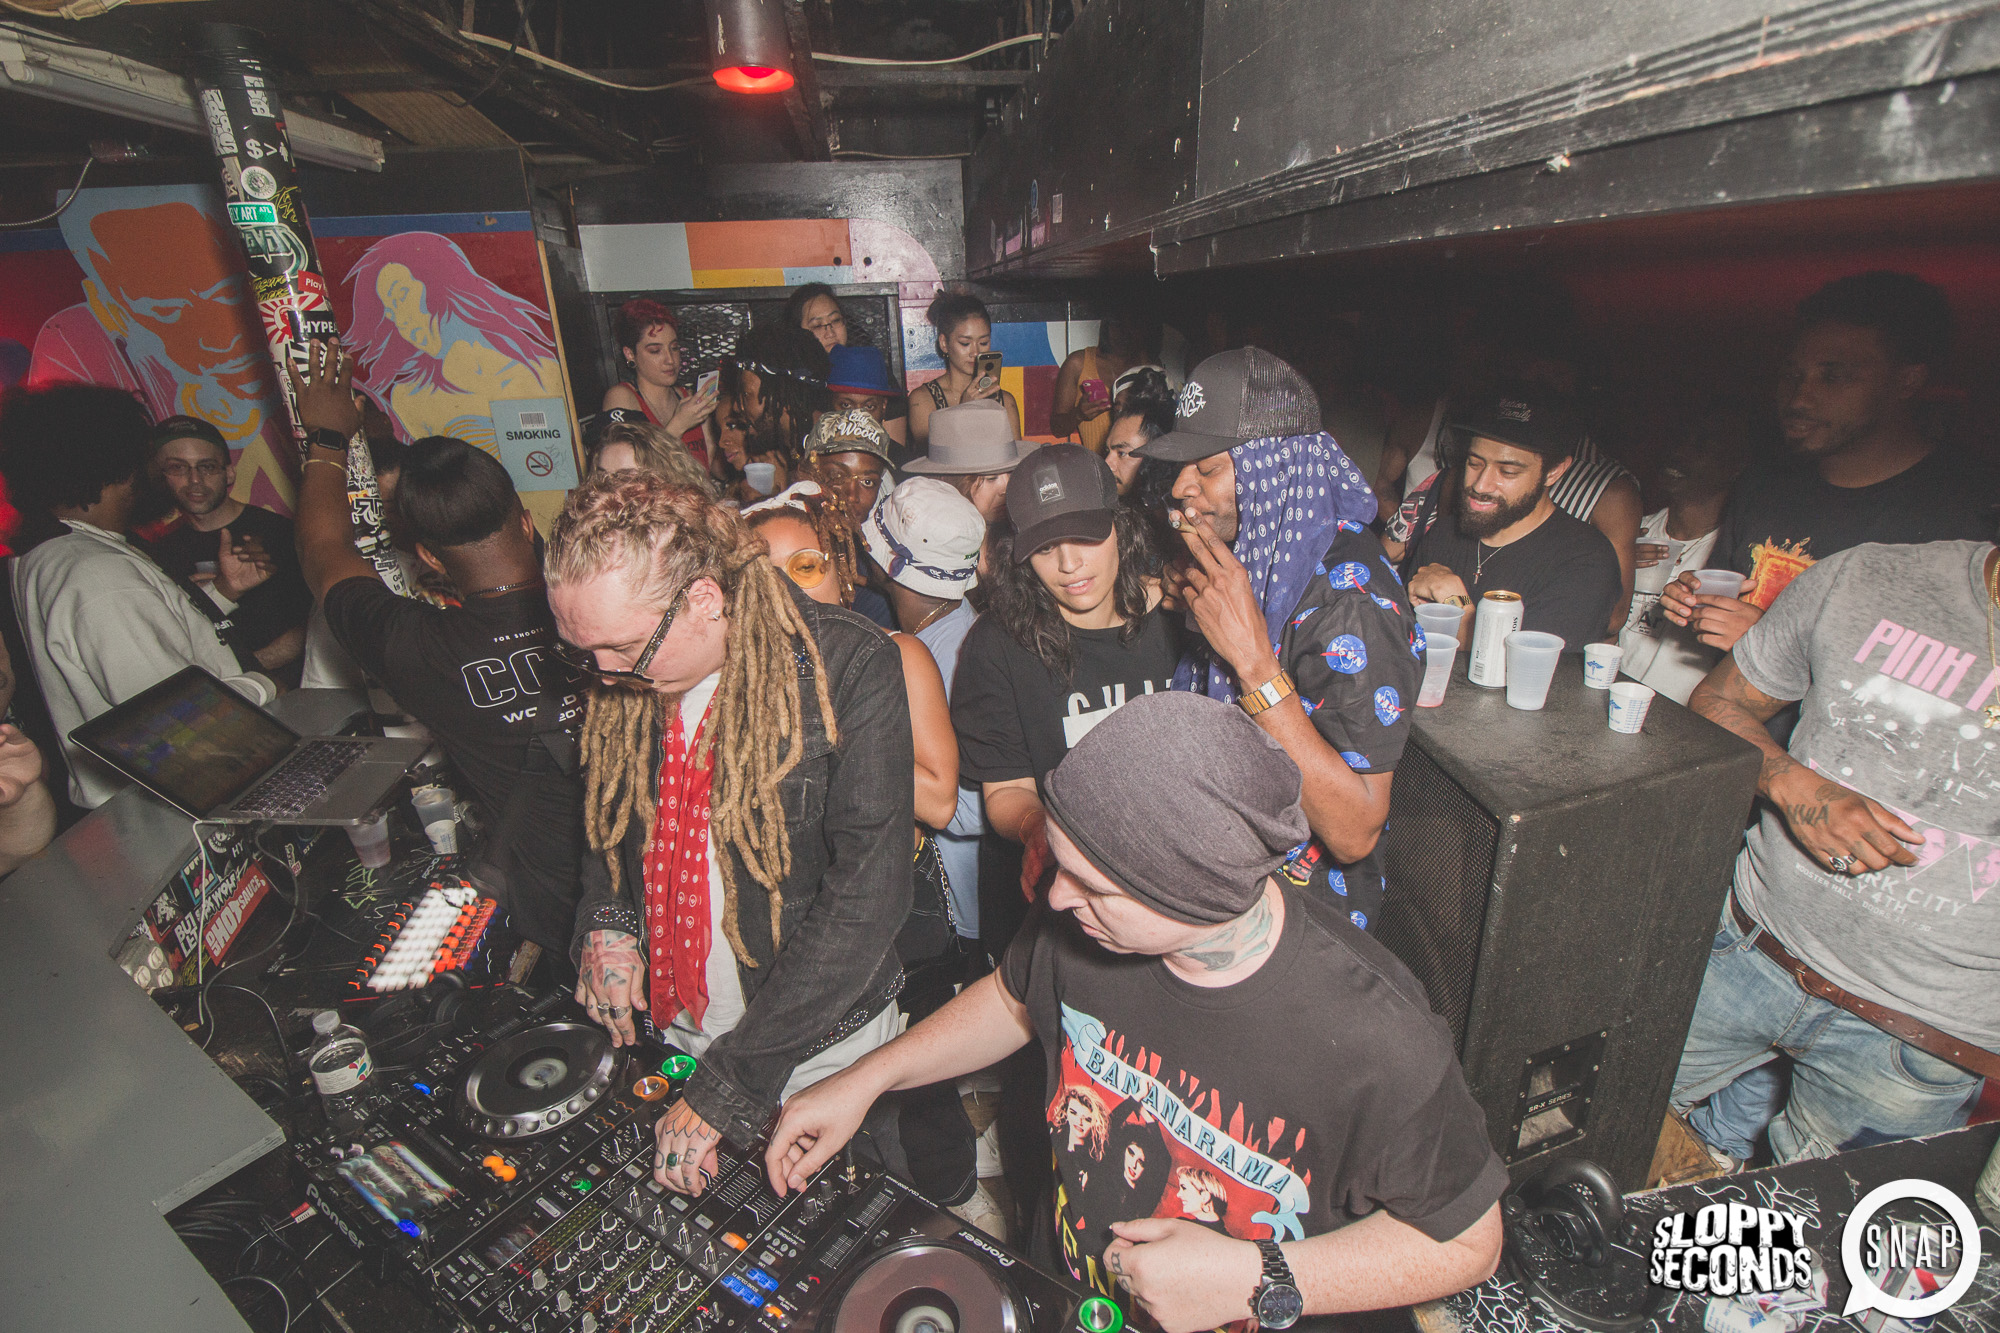 Sloppy Seconds 7.13.19 Oh Snap Kid Colin Boddy Atlanta-113.jpg